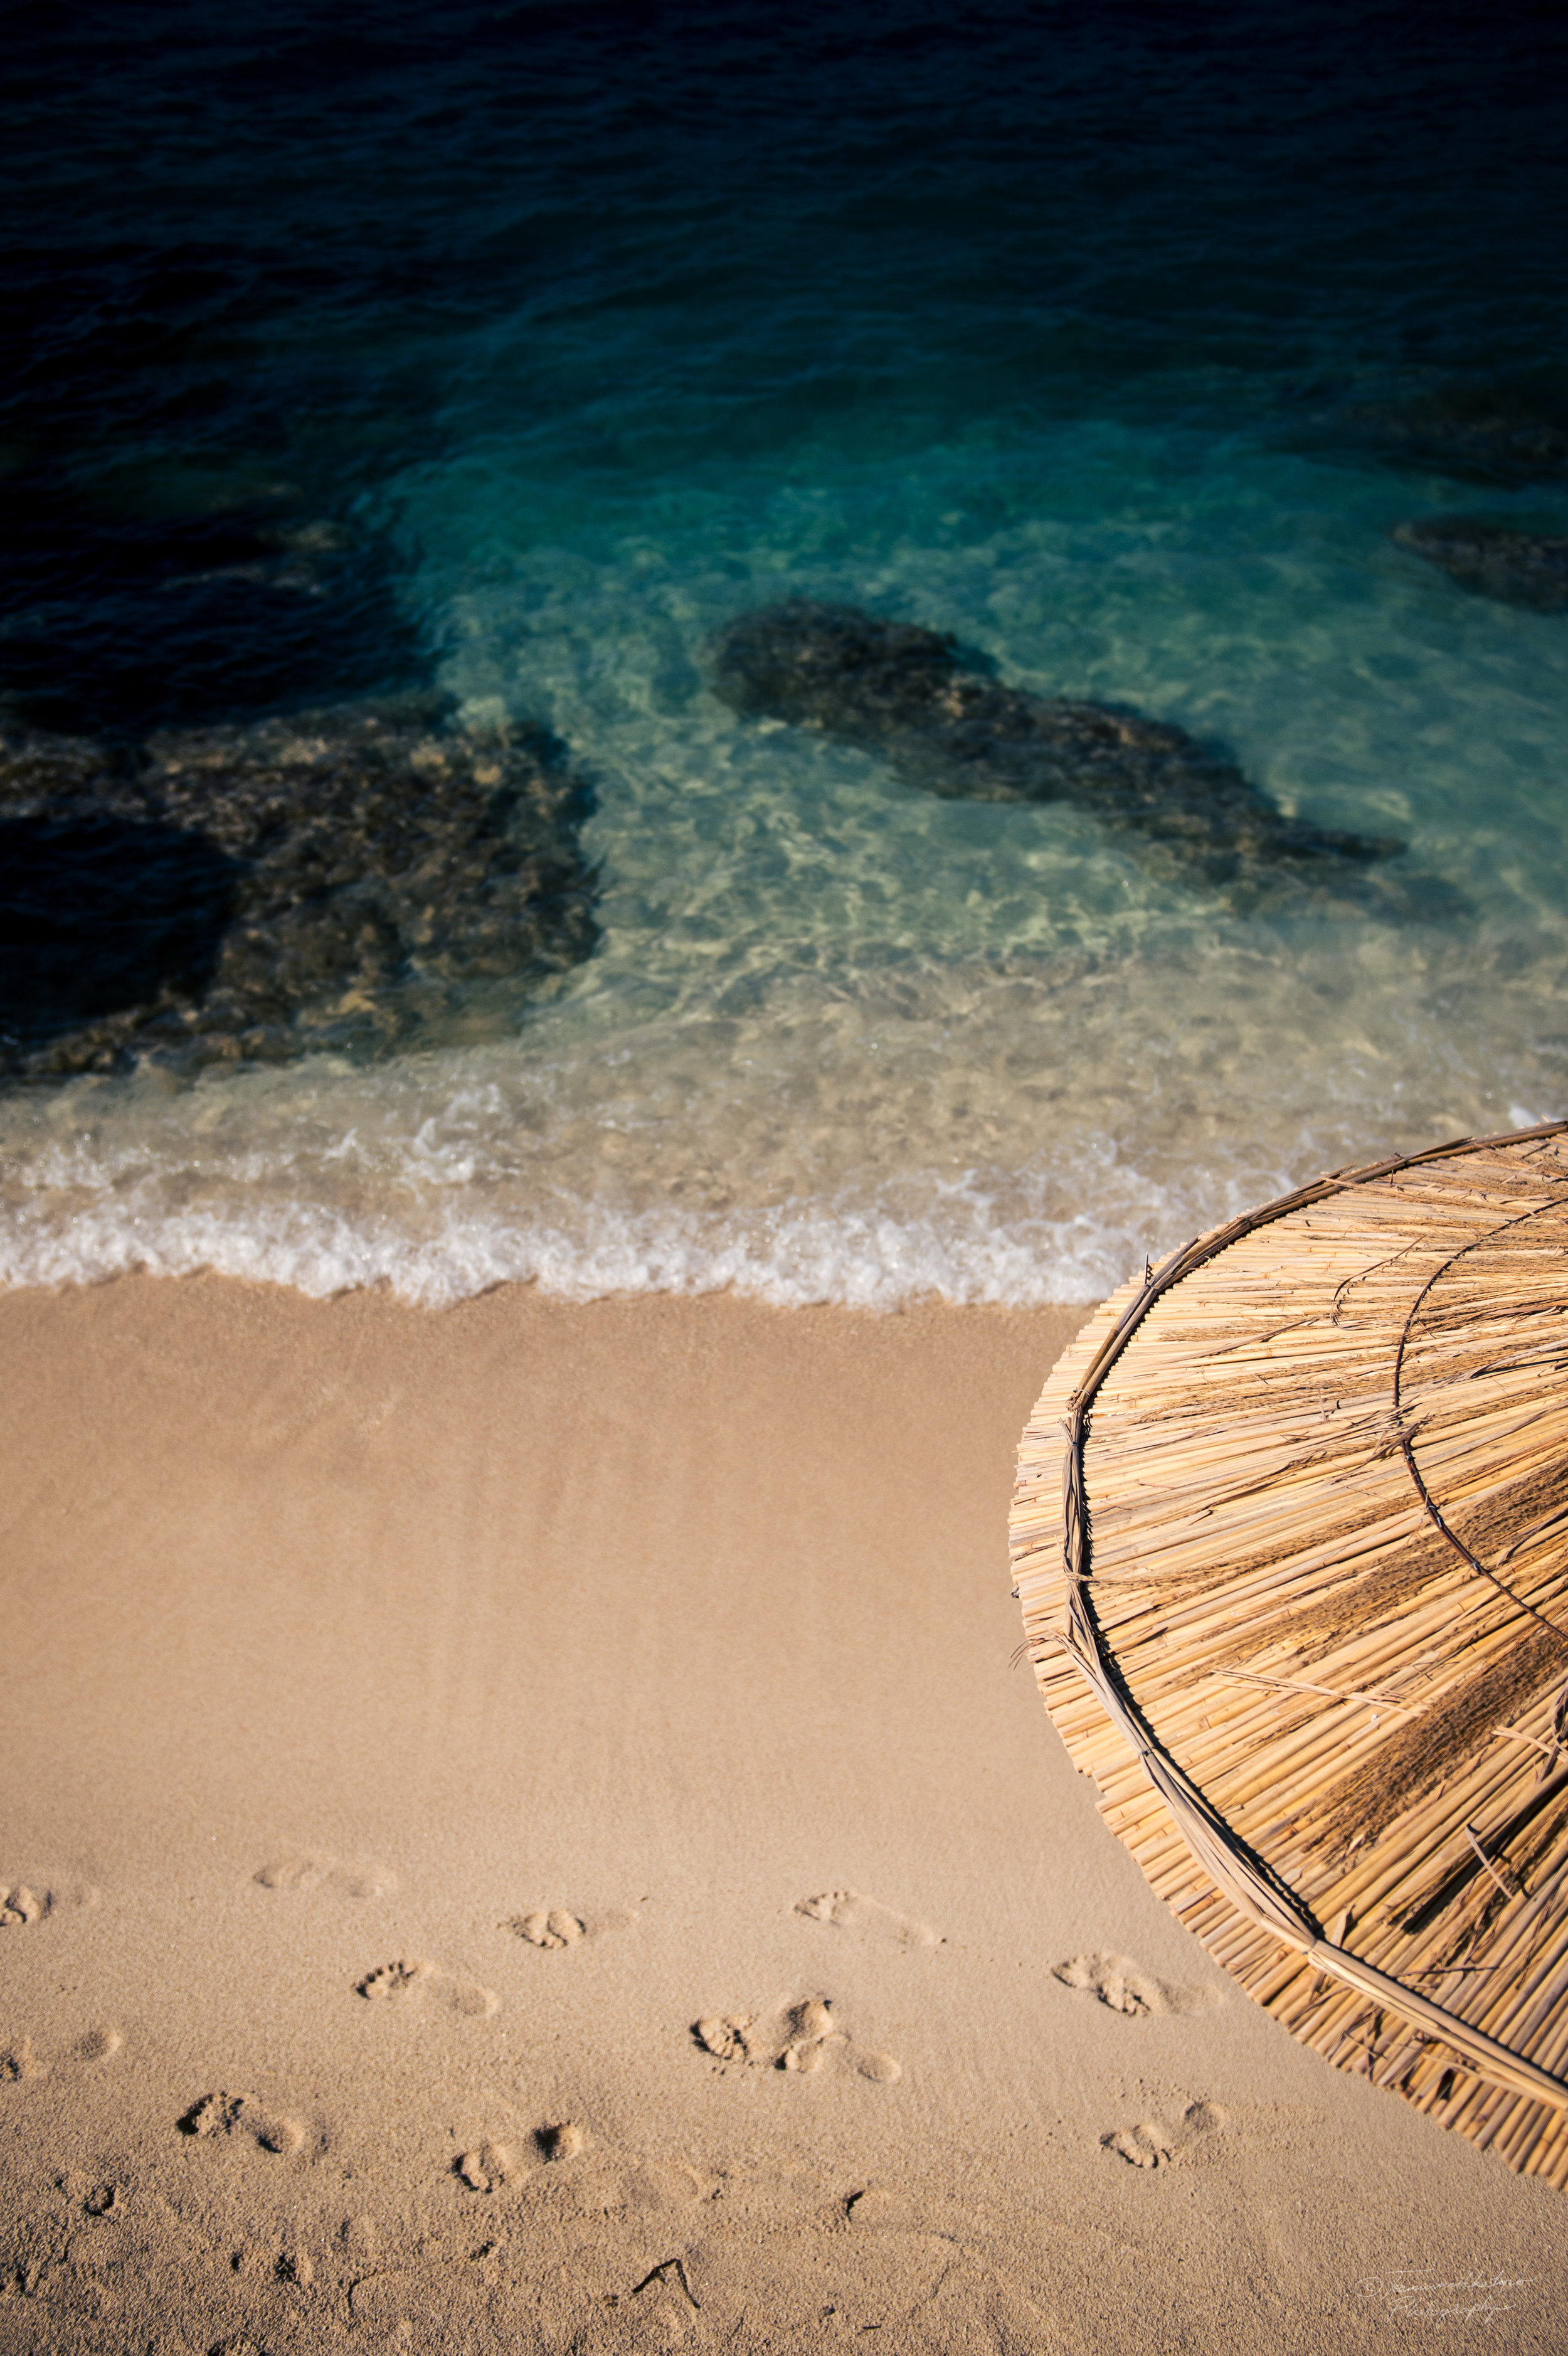 Footprints in the sand and a parasol on a beach.jpg